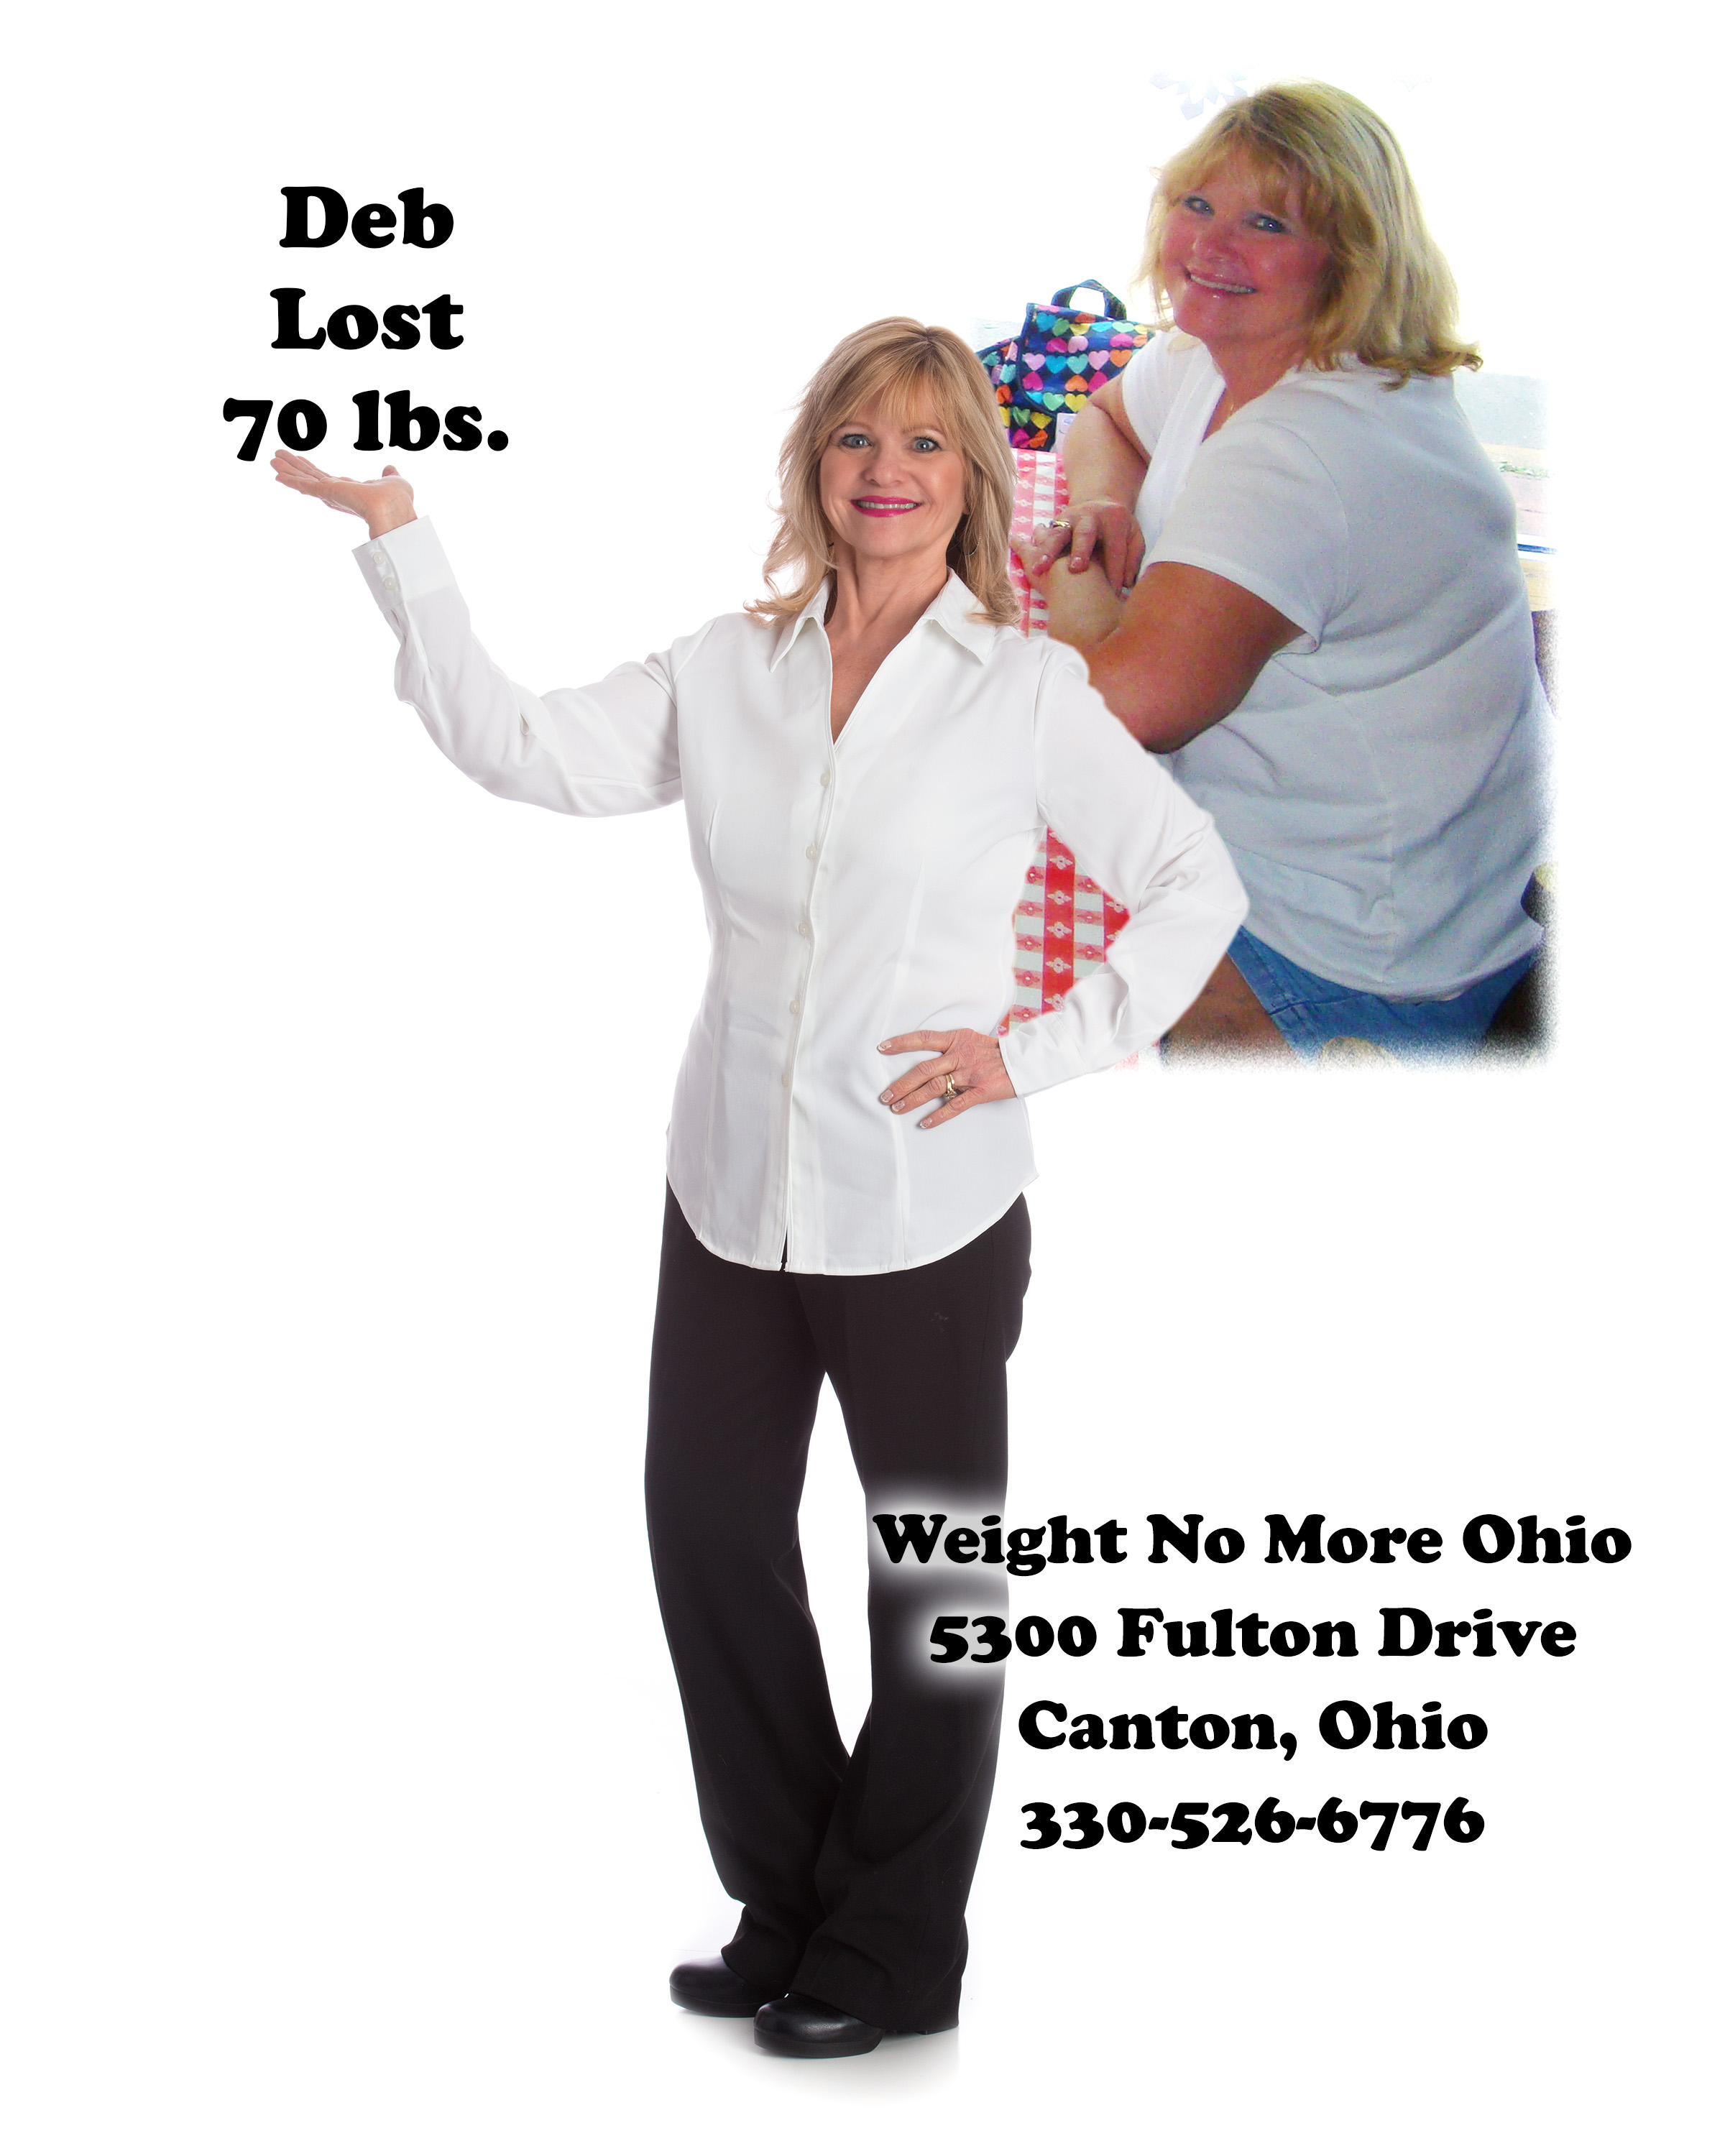 Weight No More Ohio